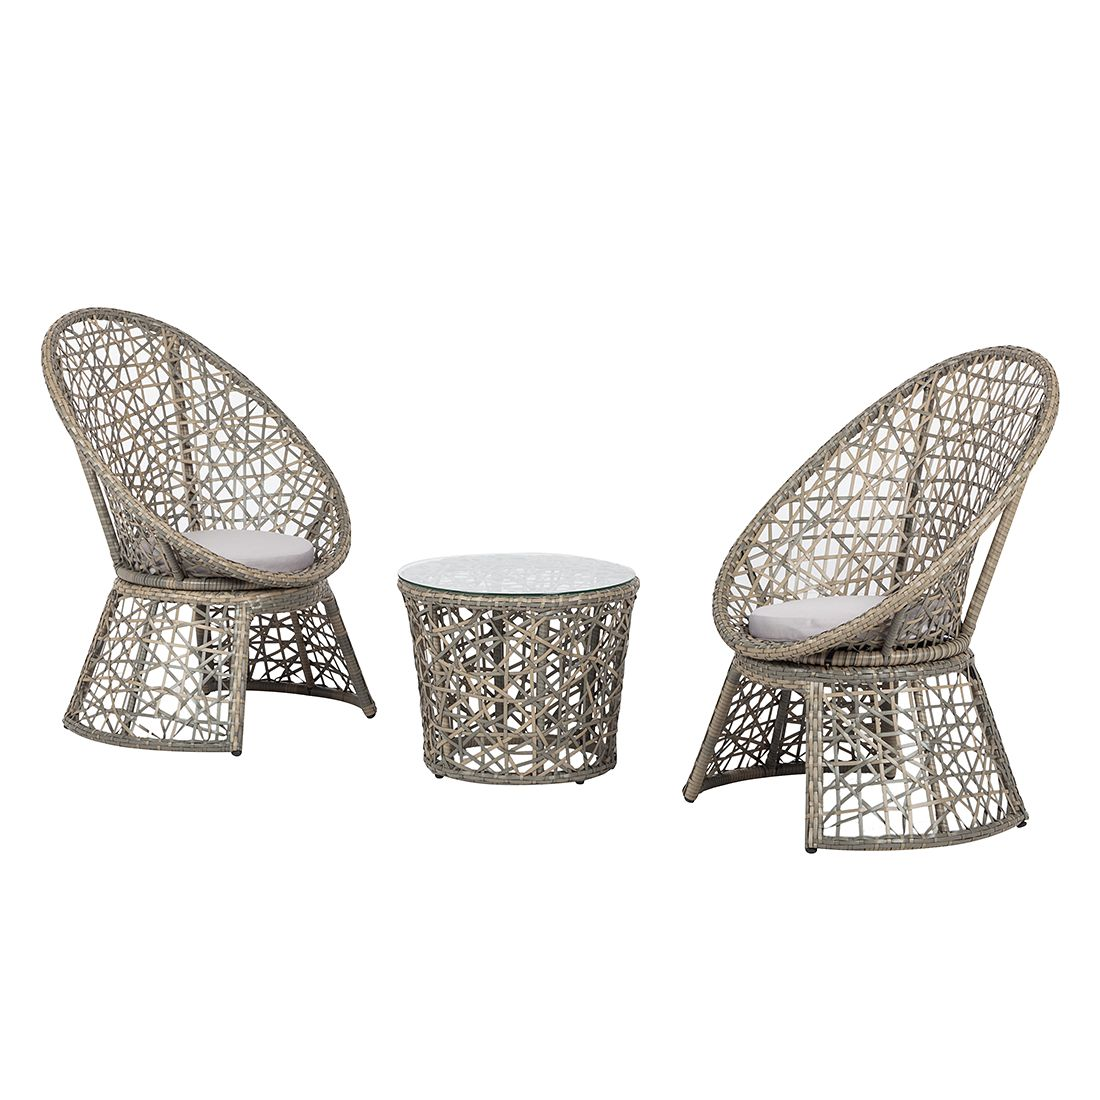 Set da giardino Moosh (3 pezzi) - Polyrattan Color antracite, Jack and Alice